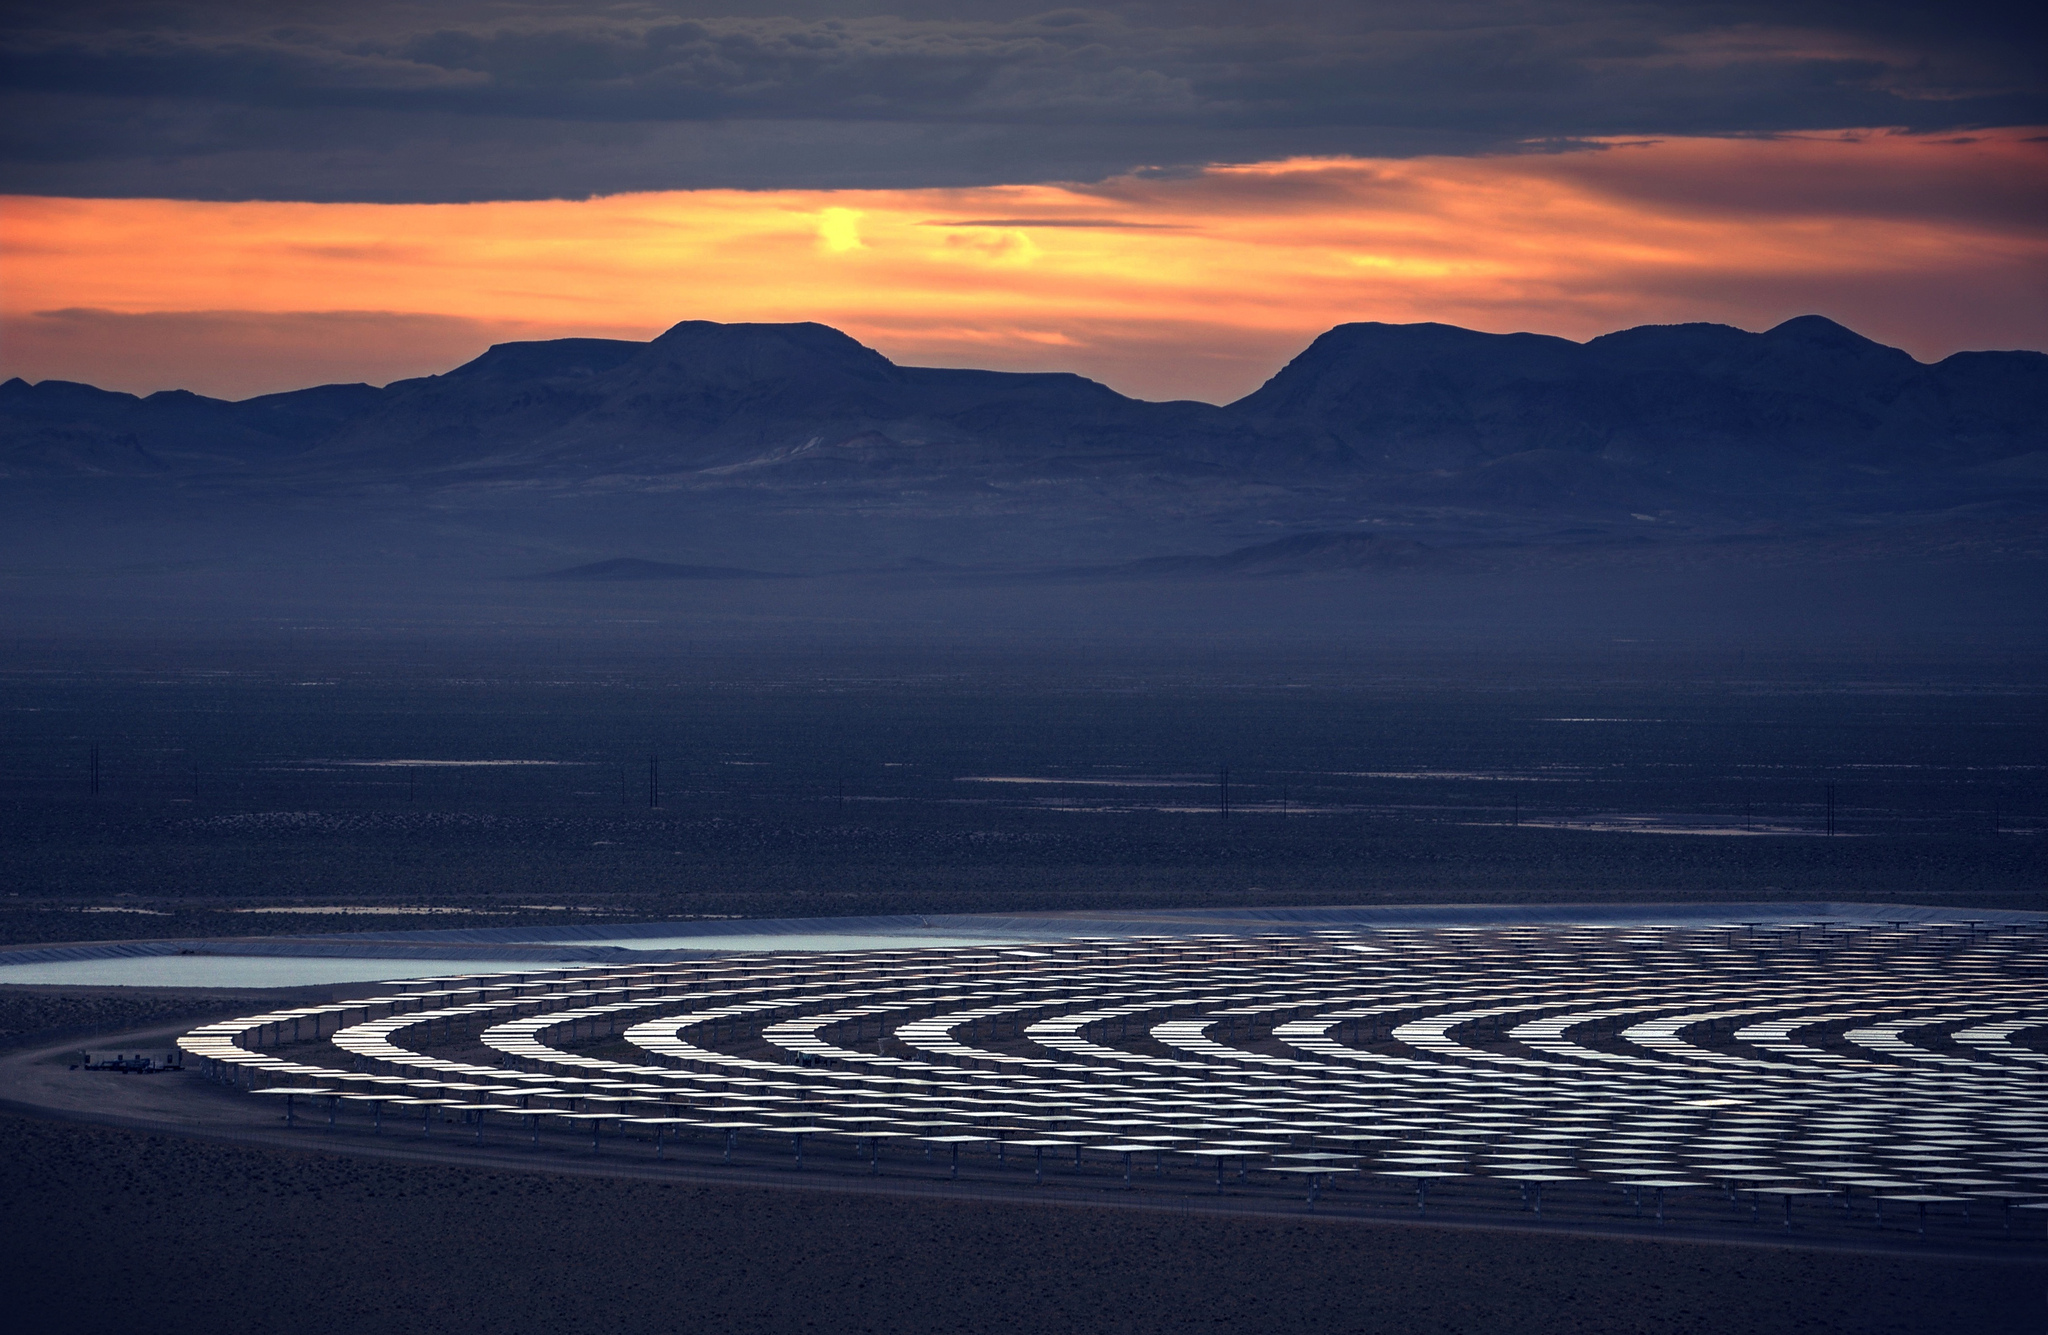 <p>A solar plant in Nevada. Peter Thoeny/Flickr</p>